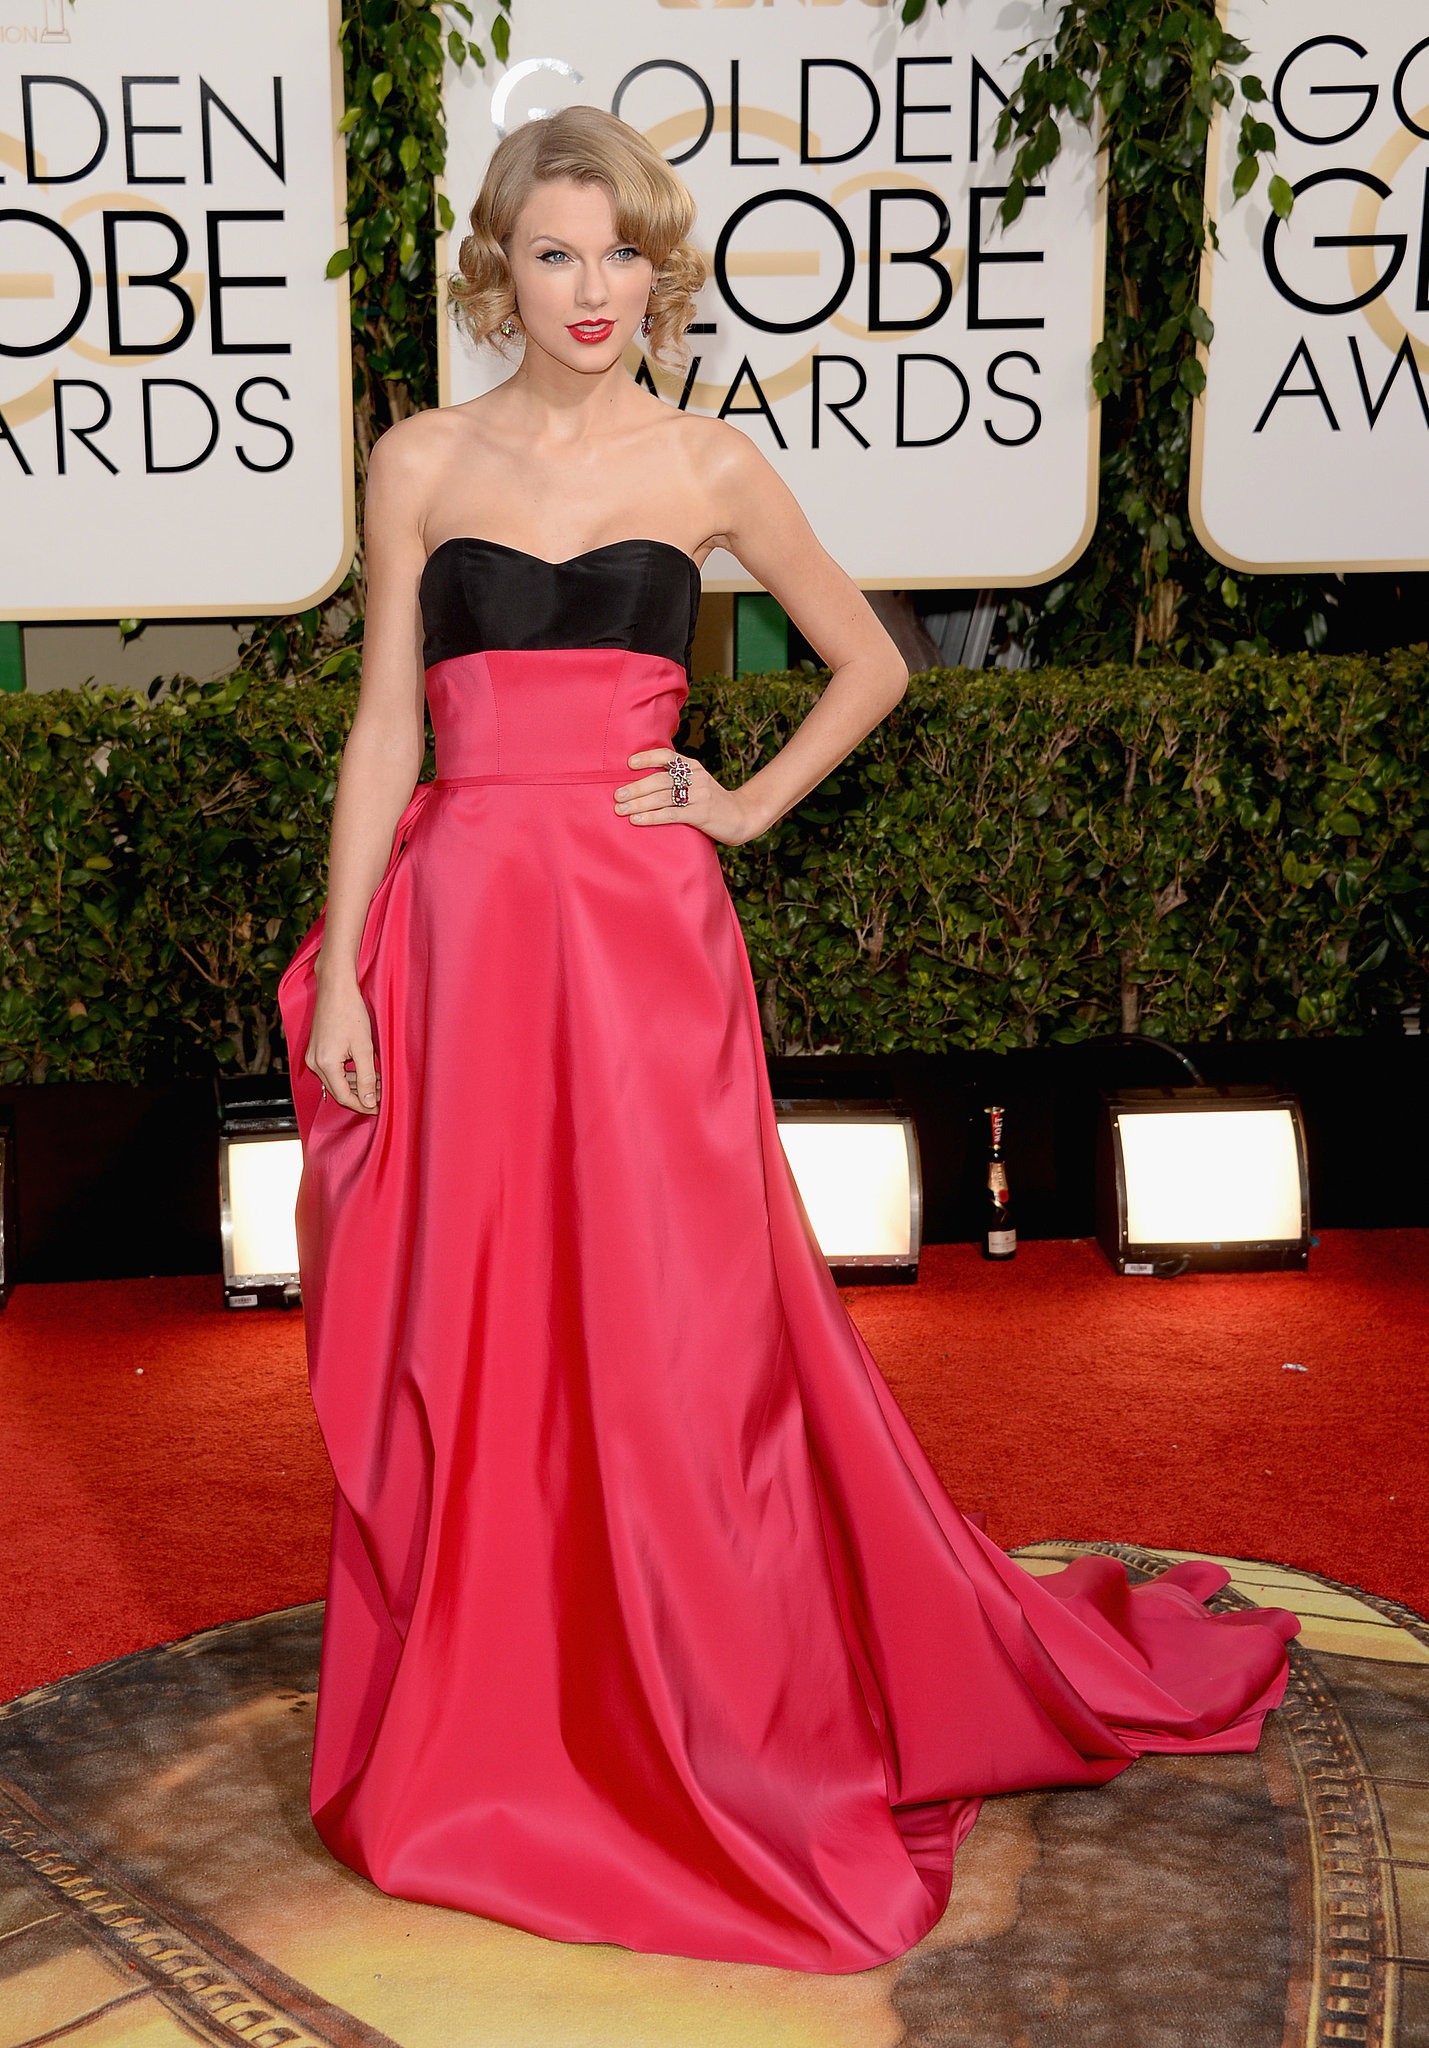 Taylor Swift arrived at the Golden Globes.